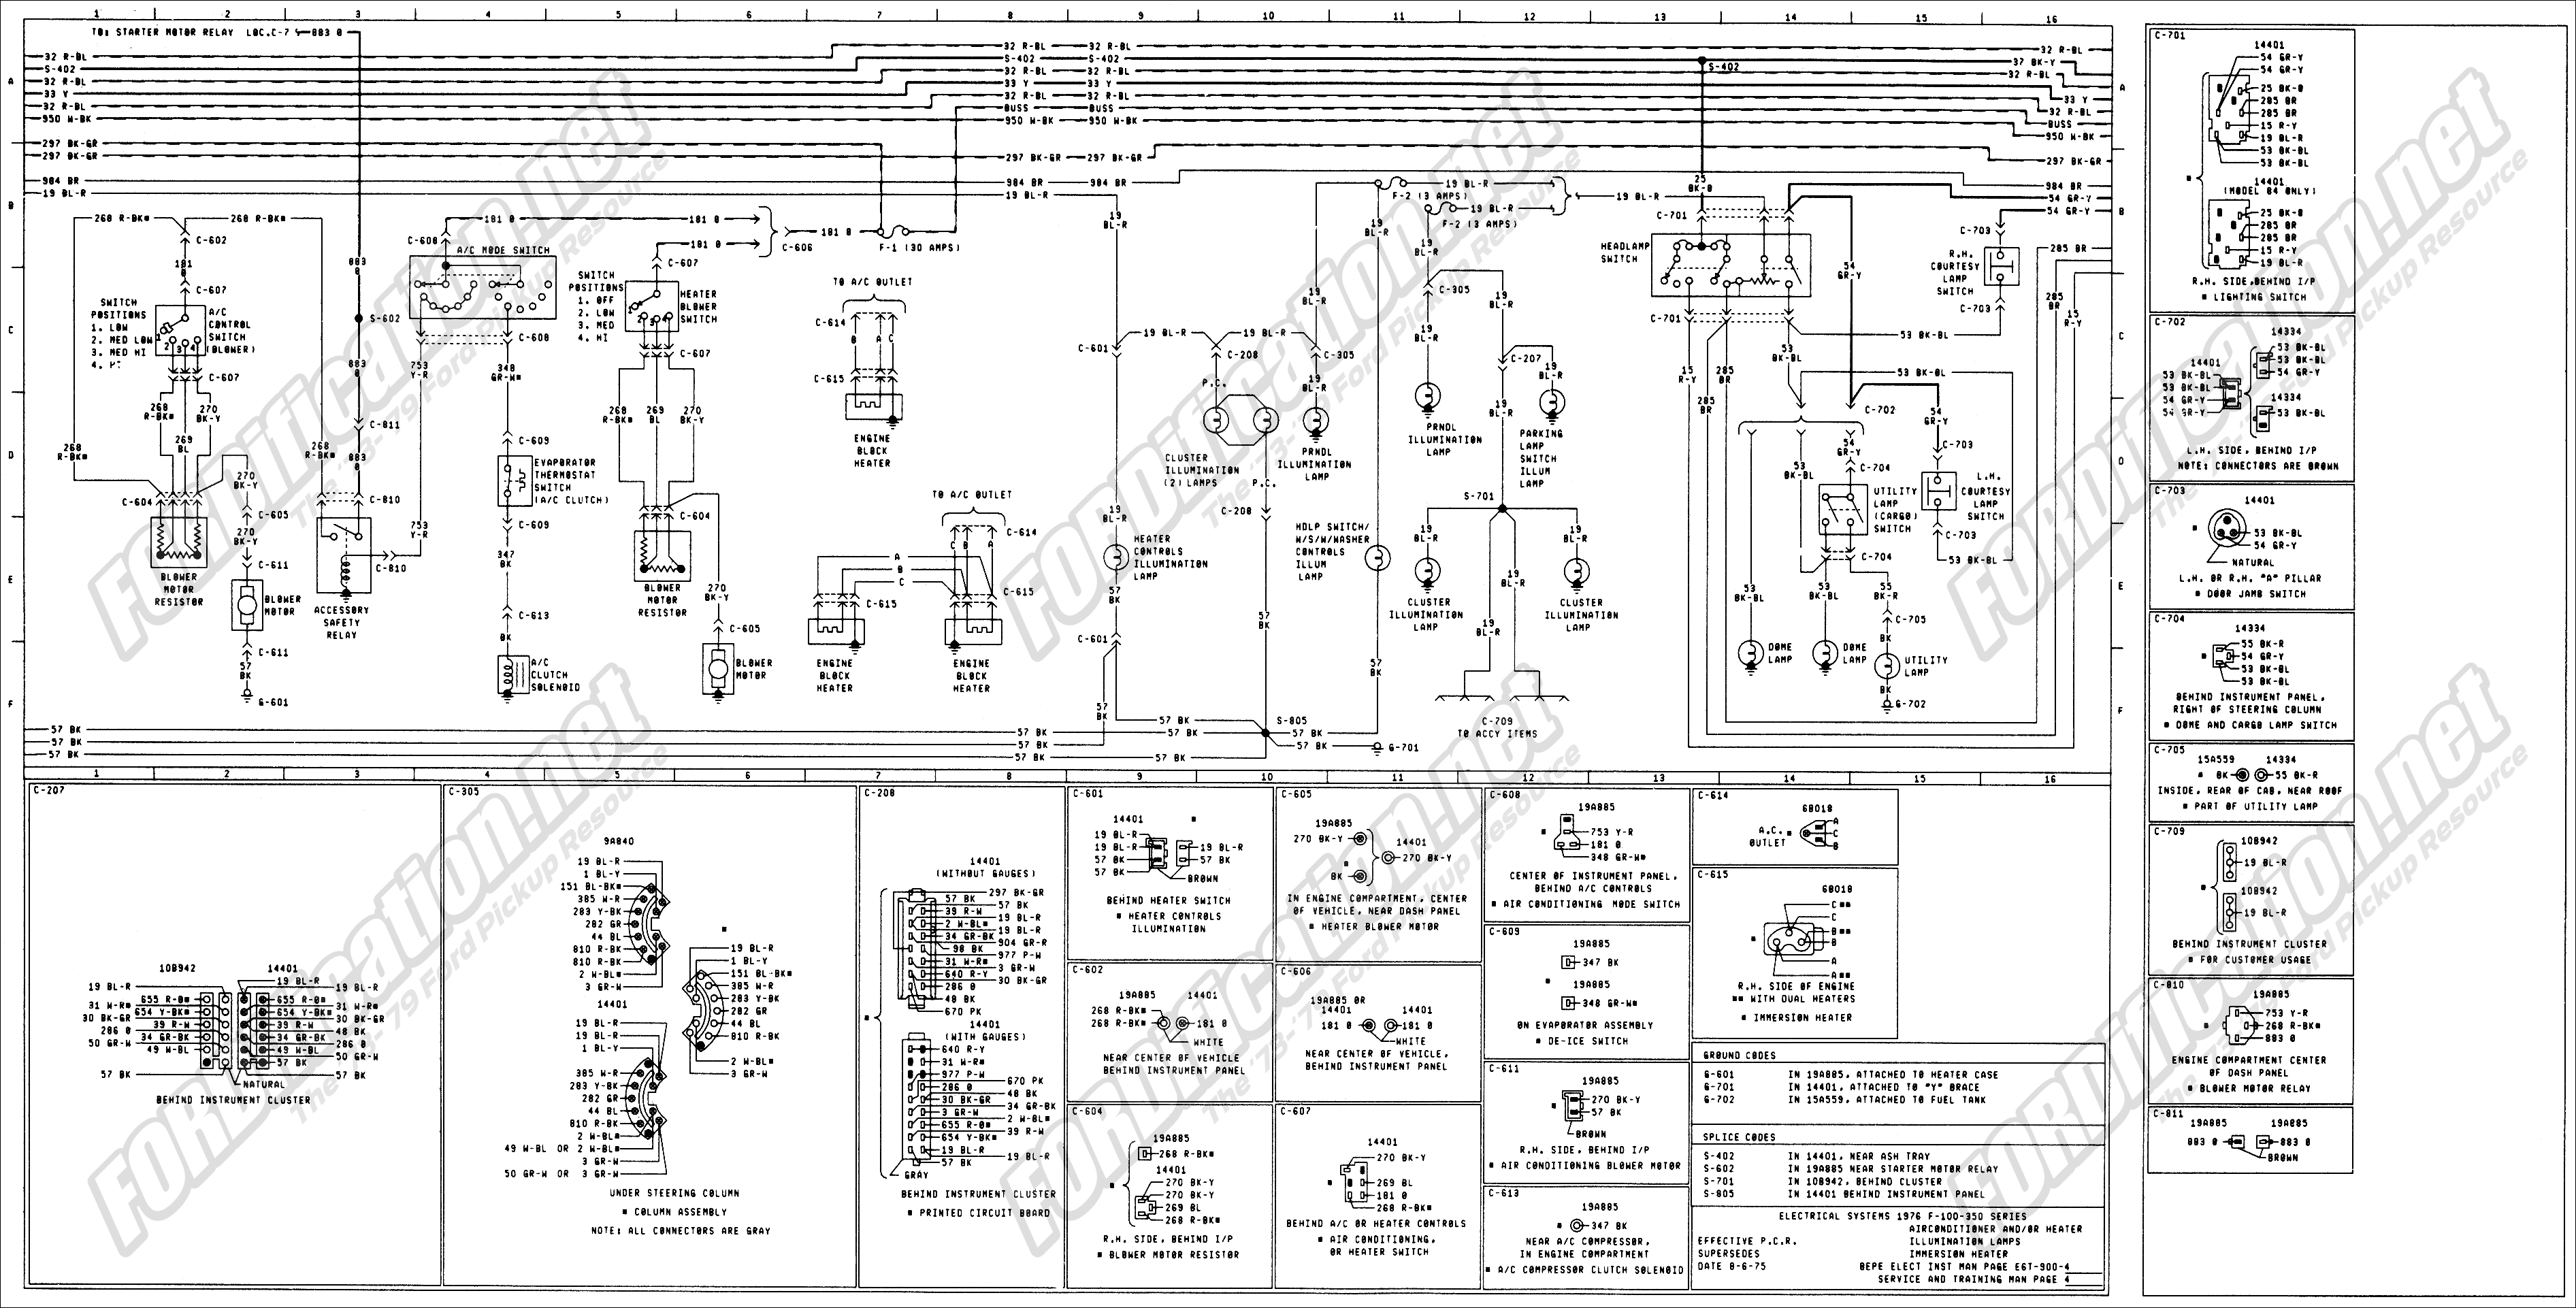 F250 7 3l wiring diagram blower on 1973 1979 ford truck wiring diagrams & schematics fordification net 2000 Ford 7.3 Diesel Wiring 1999 Ford F-250 7.3L Wiring Schematic